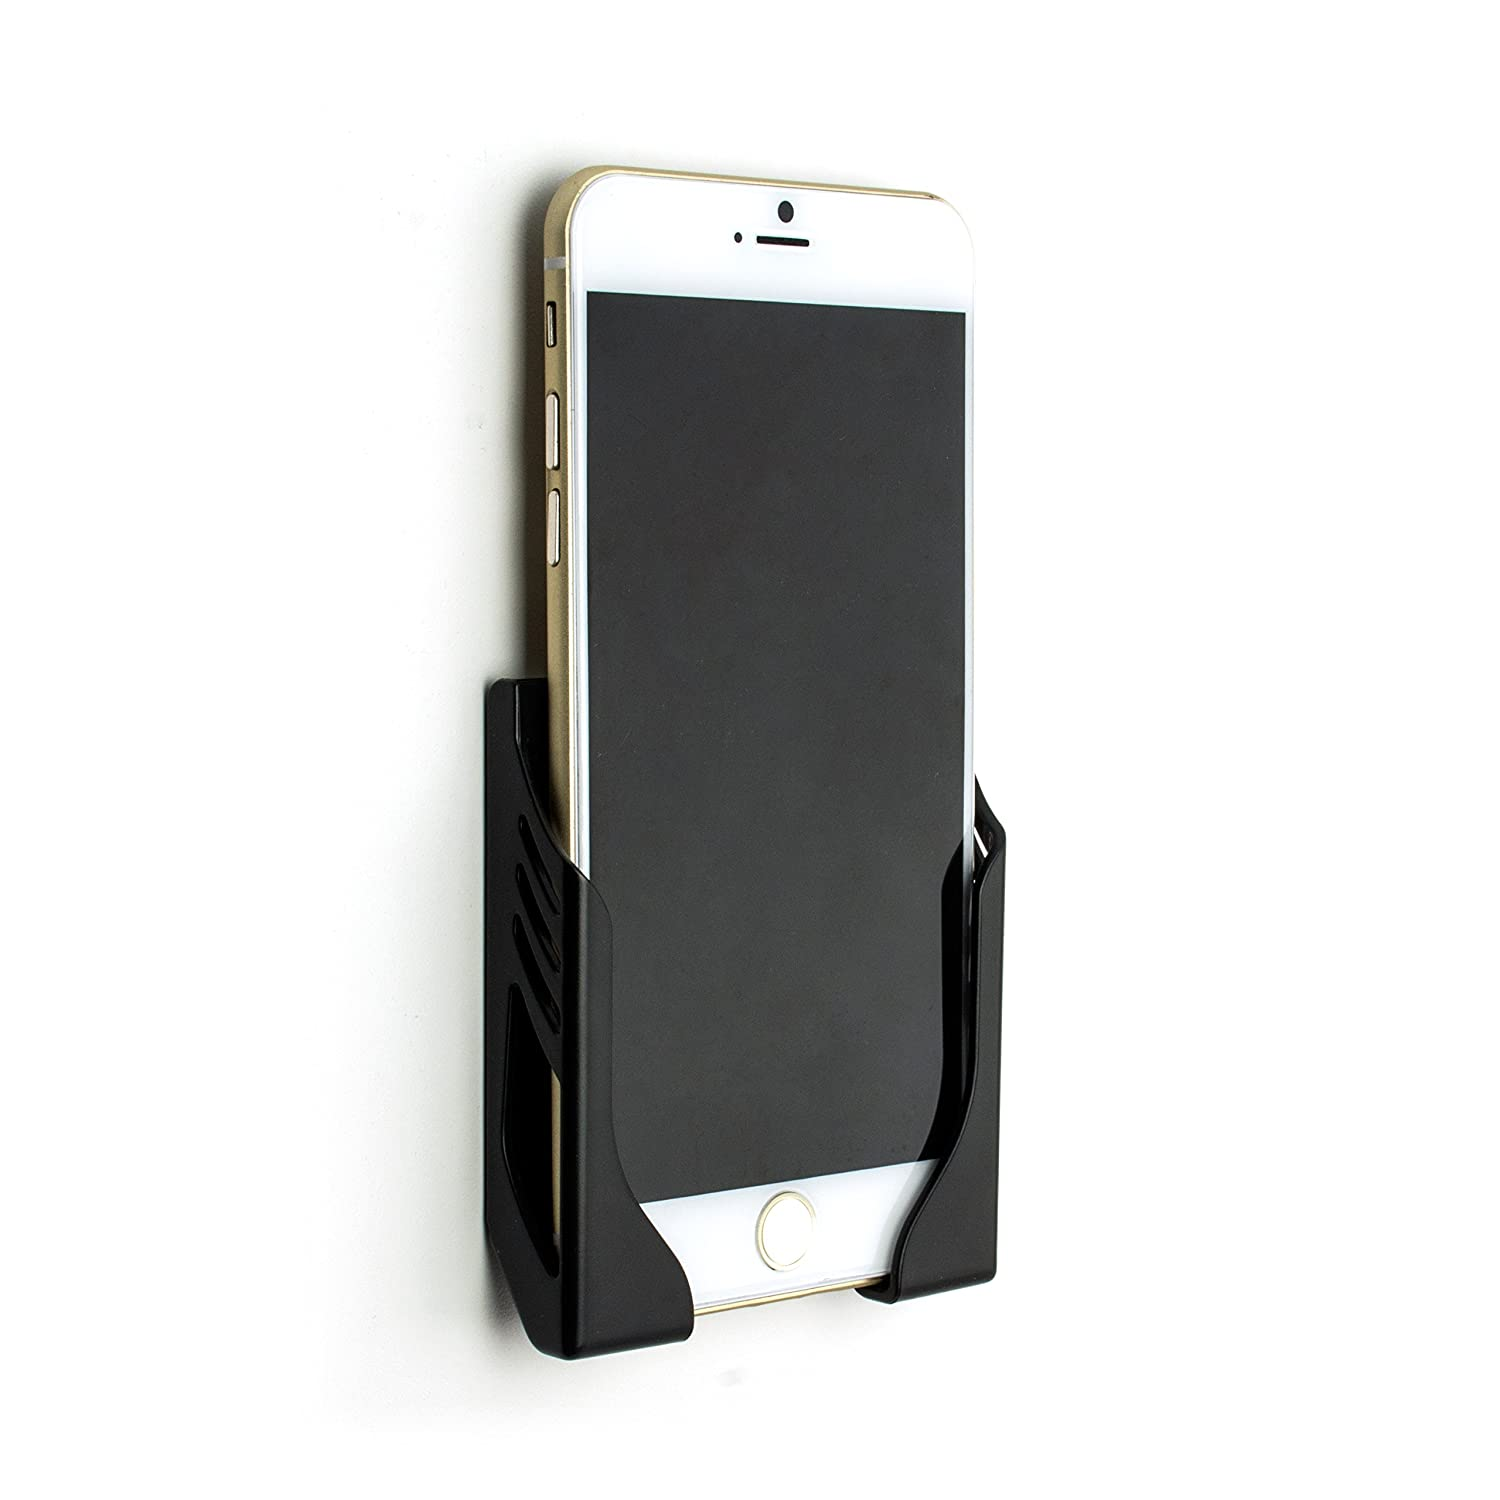 buy online b83ee 7f2a0 Damage-Free Wall Mount for iPhone Xs, XS Max, XR, iPhone X, iPhone 8, 7,  6S, 6, iPhone 8 Plus, 7 Plus, 6 Plus, 6S Plus with 3M Command Strip ...